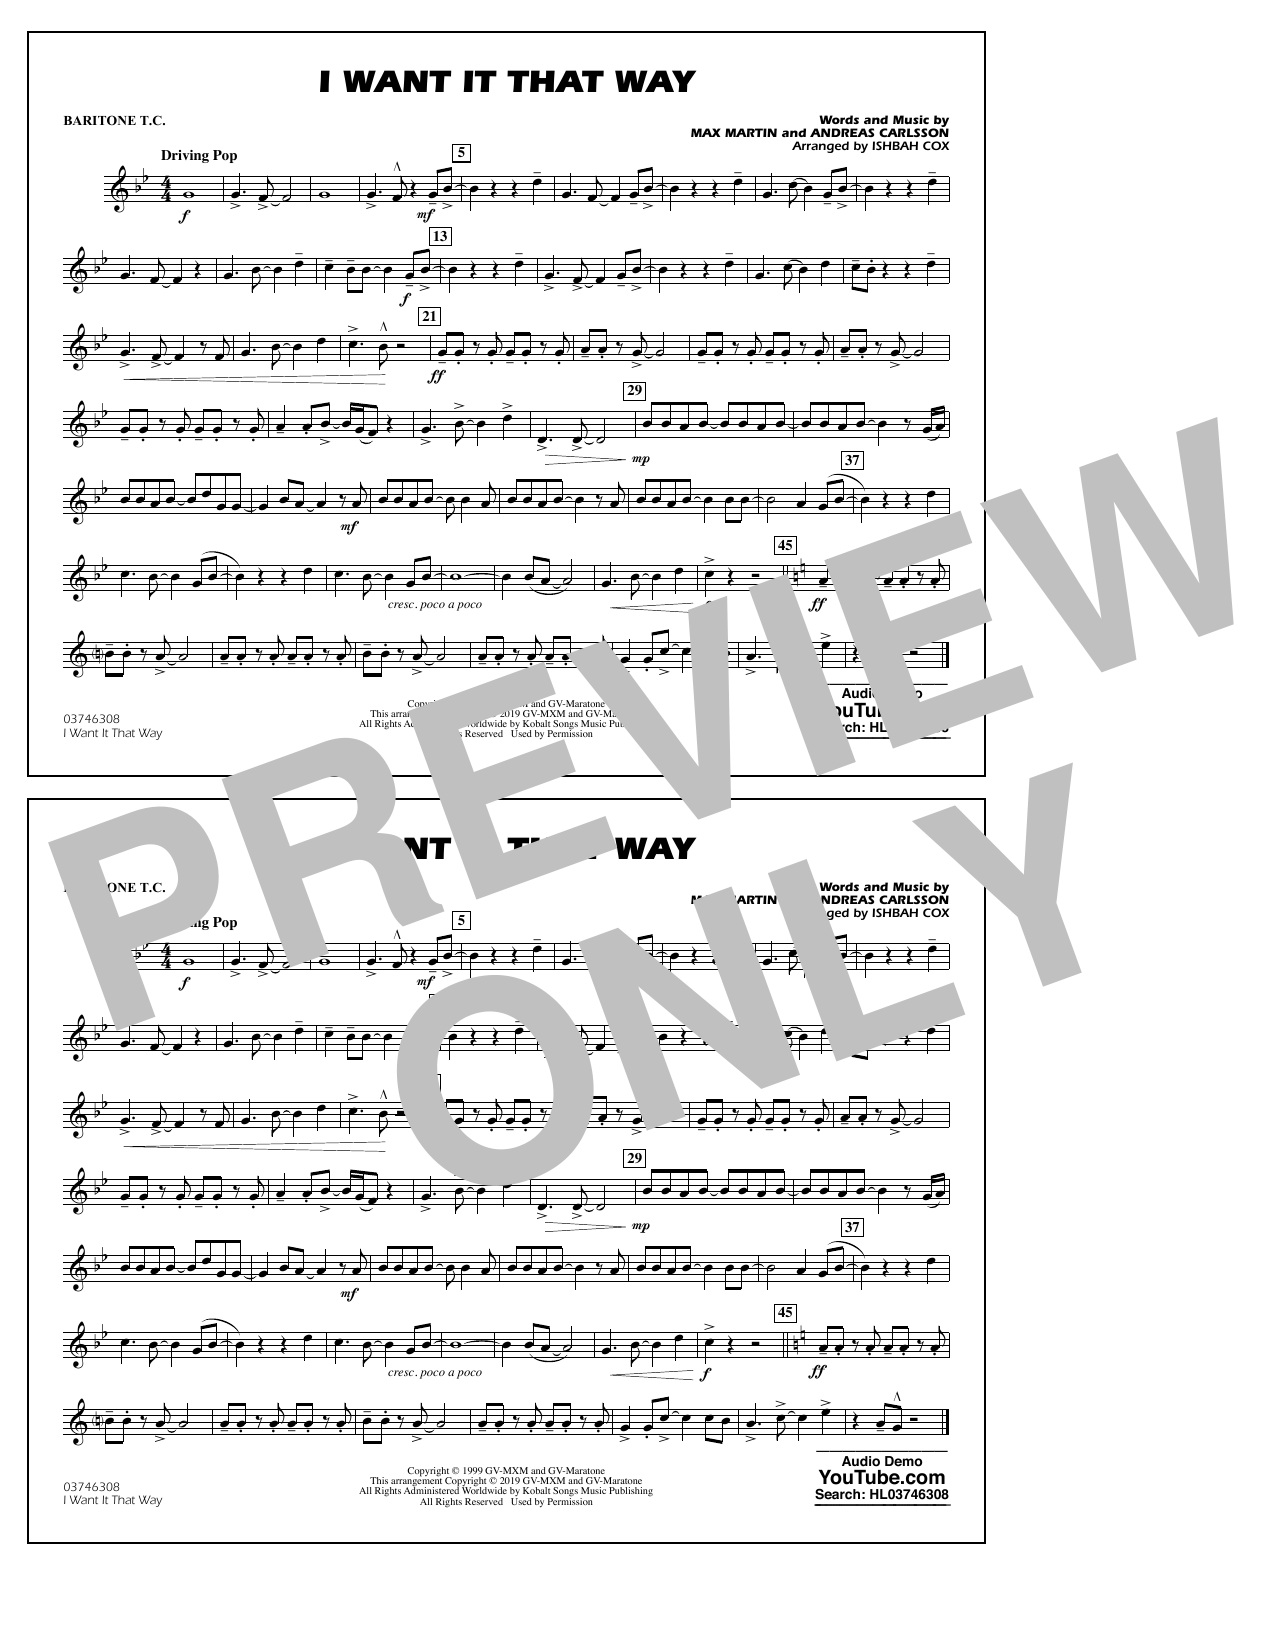 Backstreet Boys I Want It That Way (arr. Ishbah Cox) - Baritone T.C. sheet music notes and chords